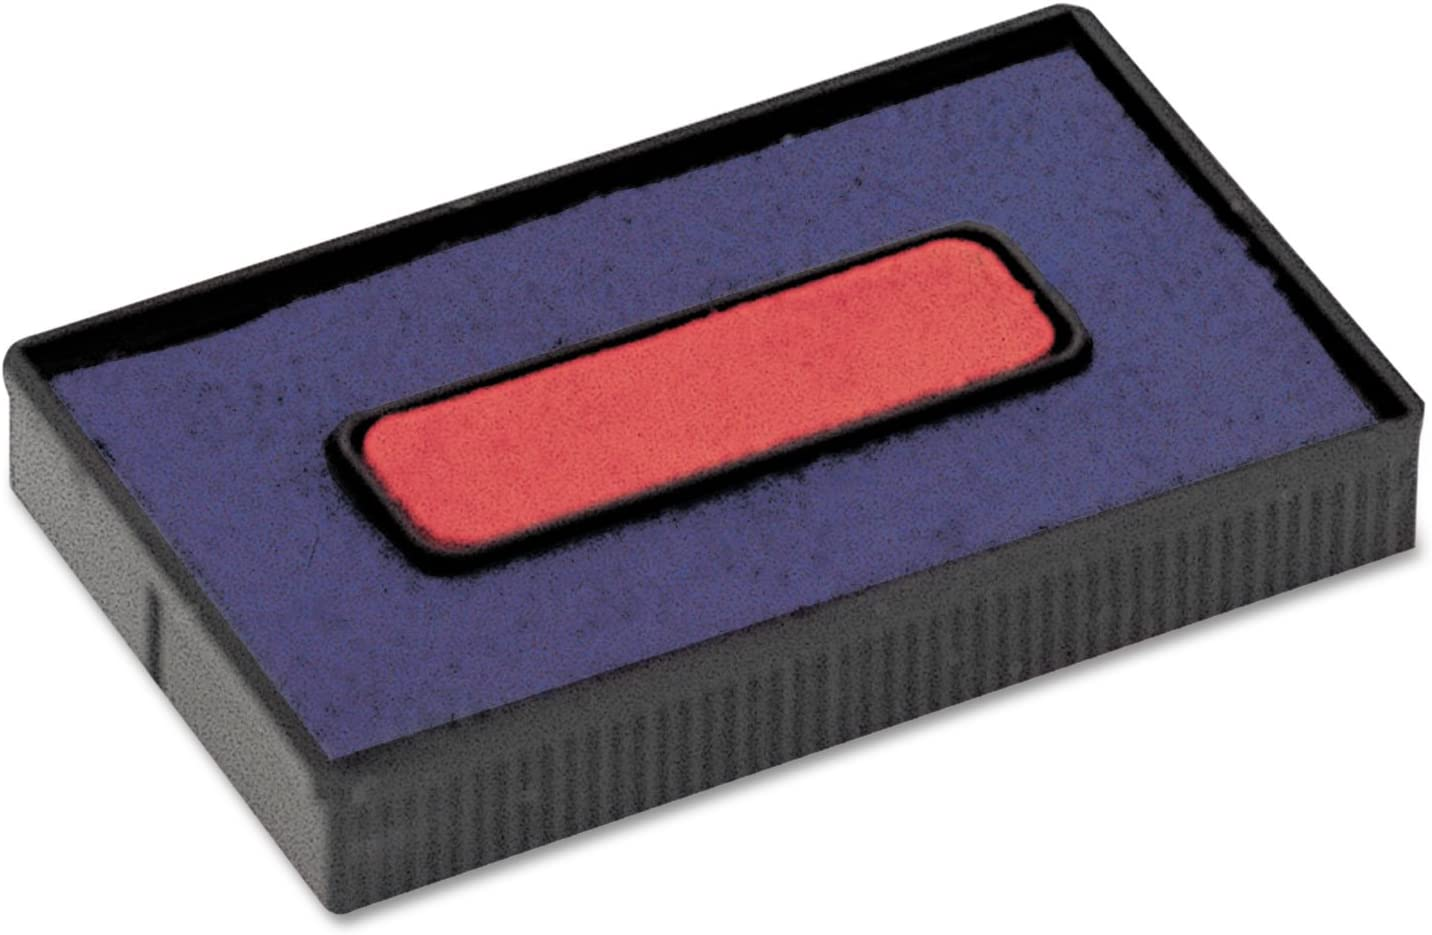 COLOP Self Inking Stamps REPLACEMENT Ink Pads Garage Business Car BLUE BLACK RED